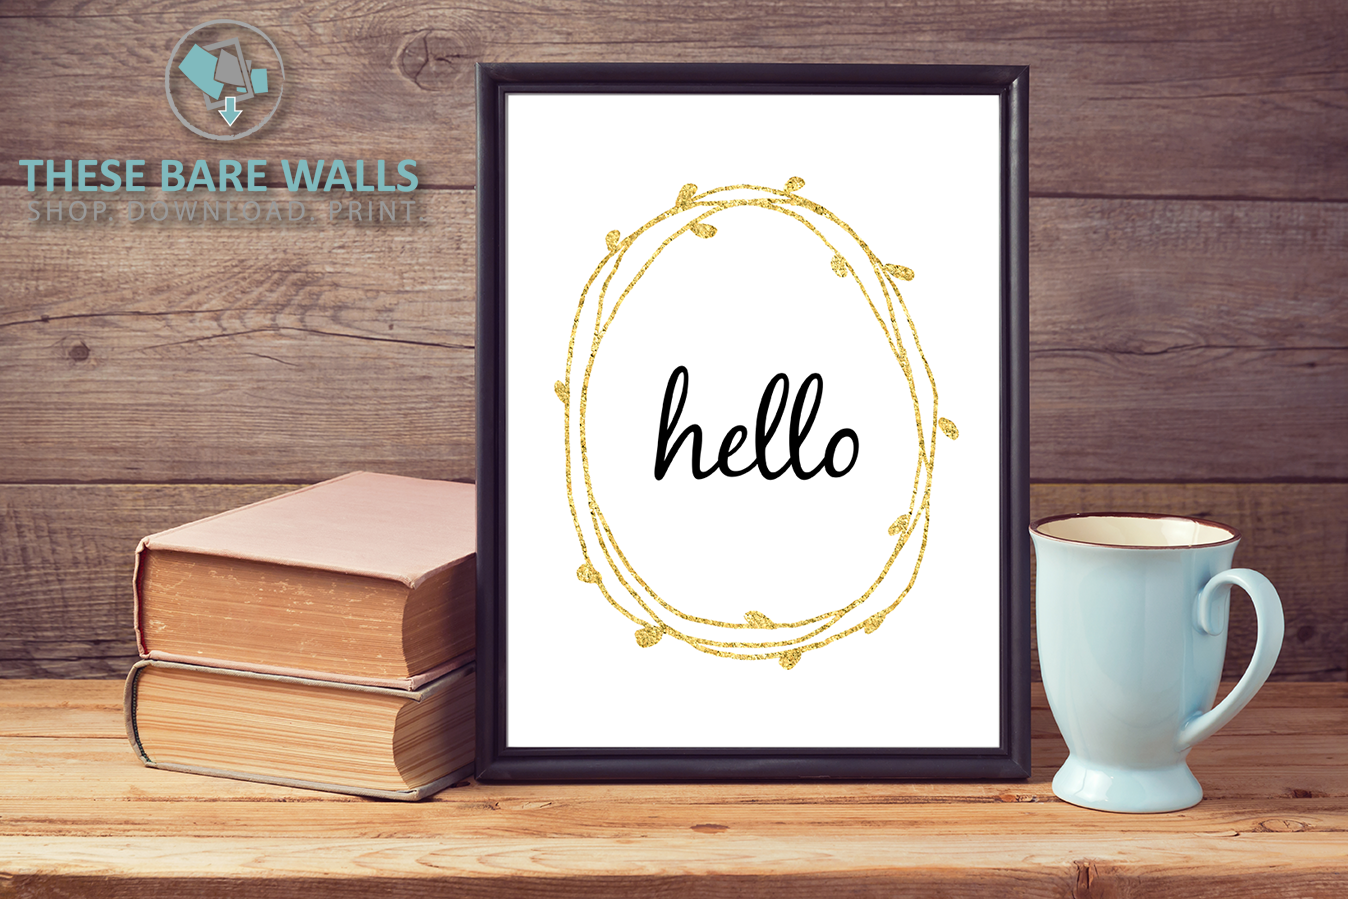 Hello Wreath - These Bare Walls - 1